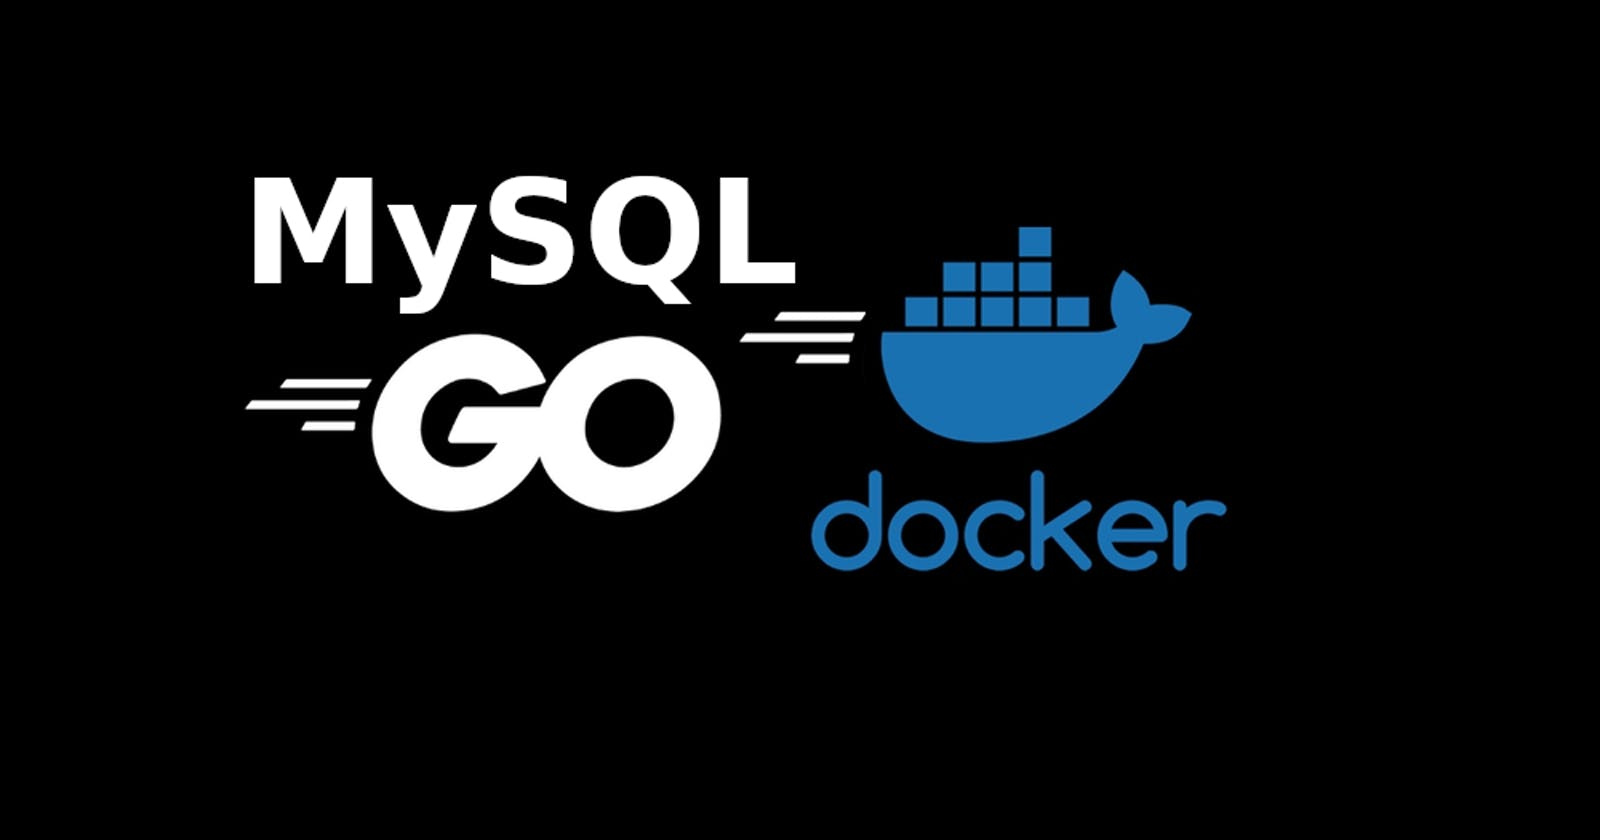 Blog Project with Go, Gin, MySQL and Docker - Part 1